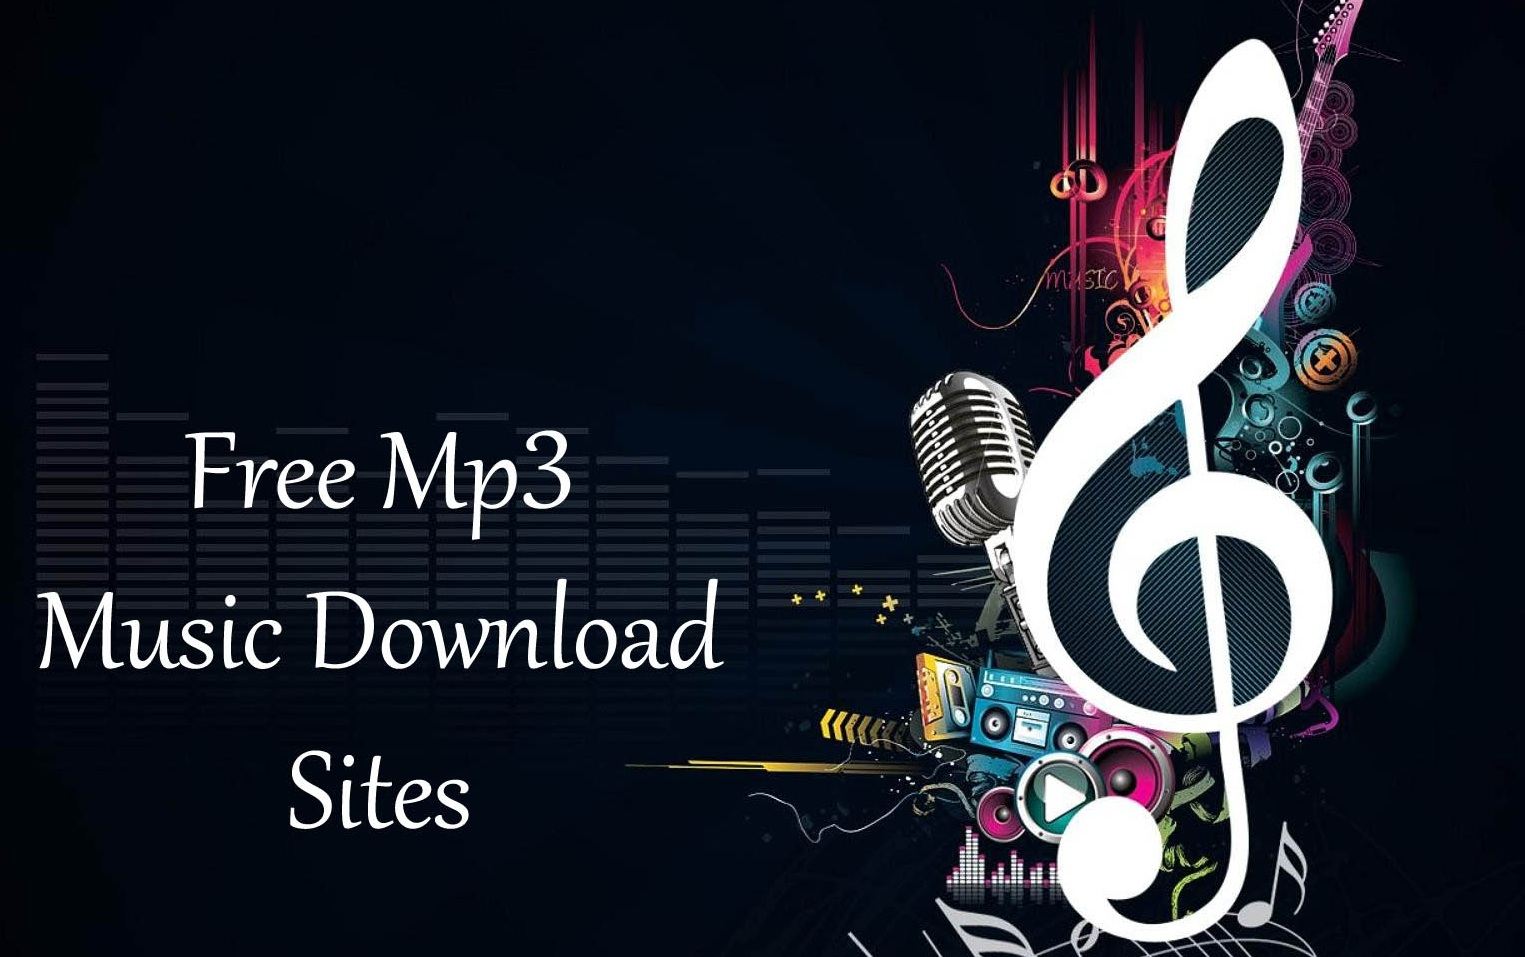 Free-mp3-Download-Sites